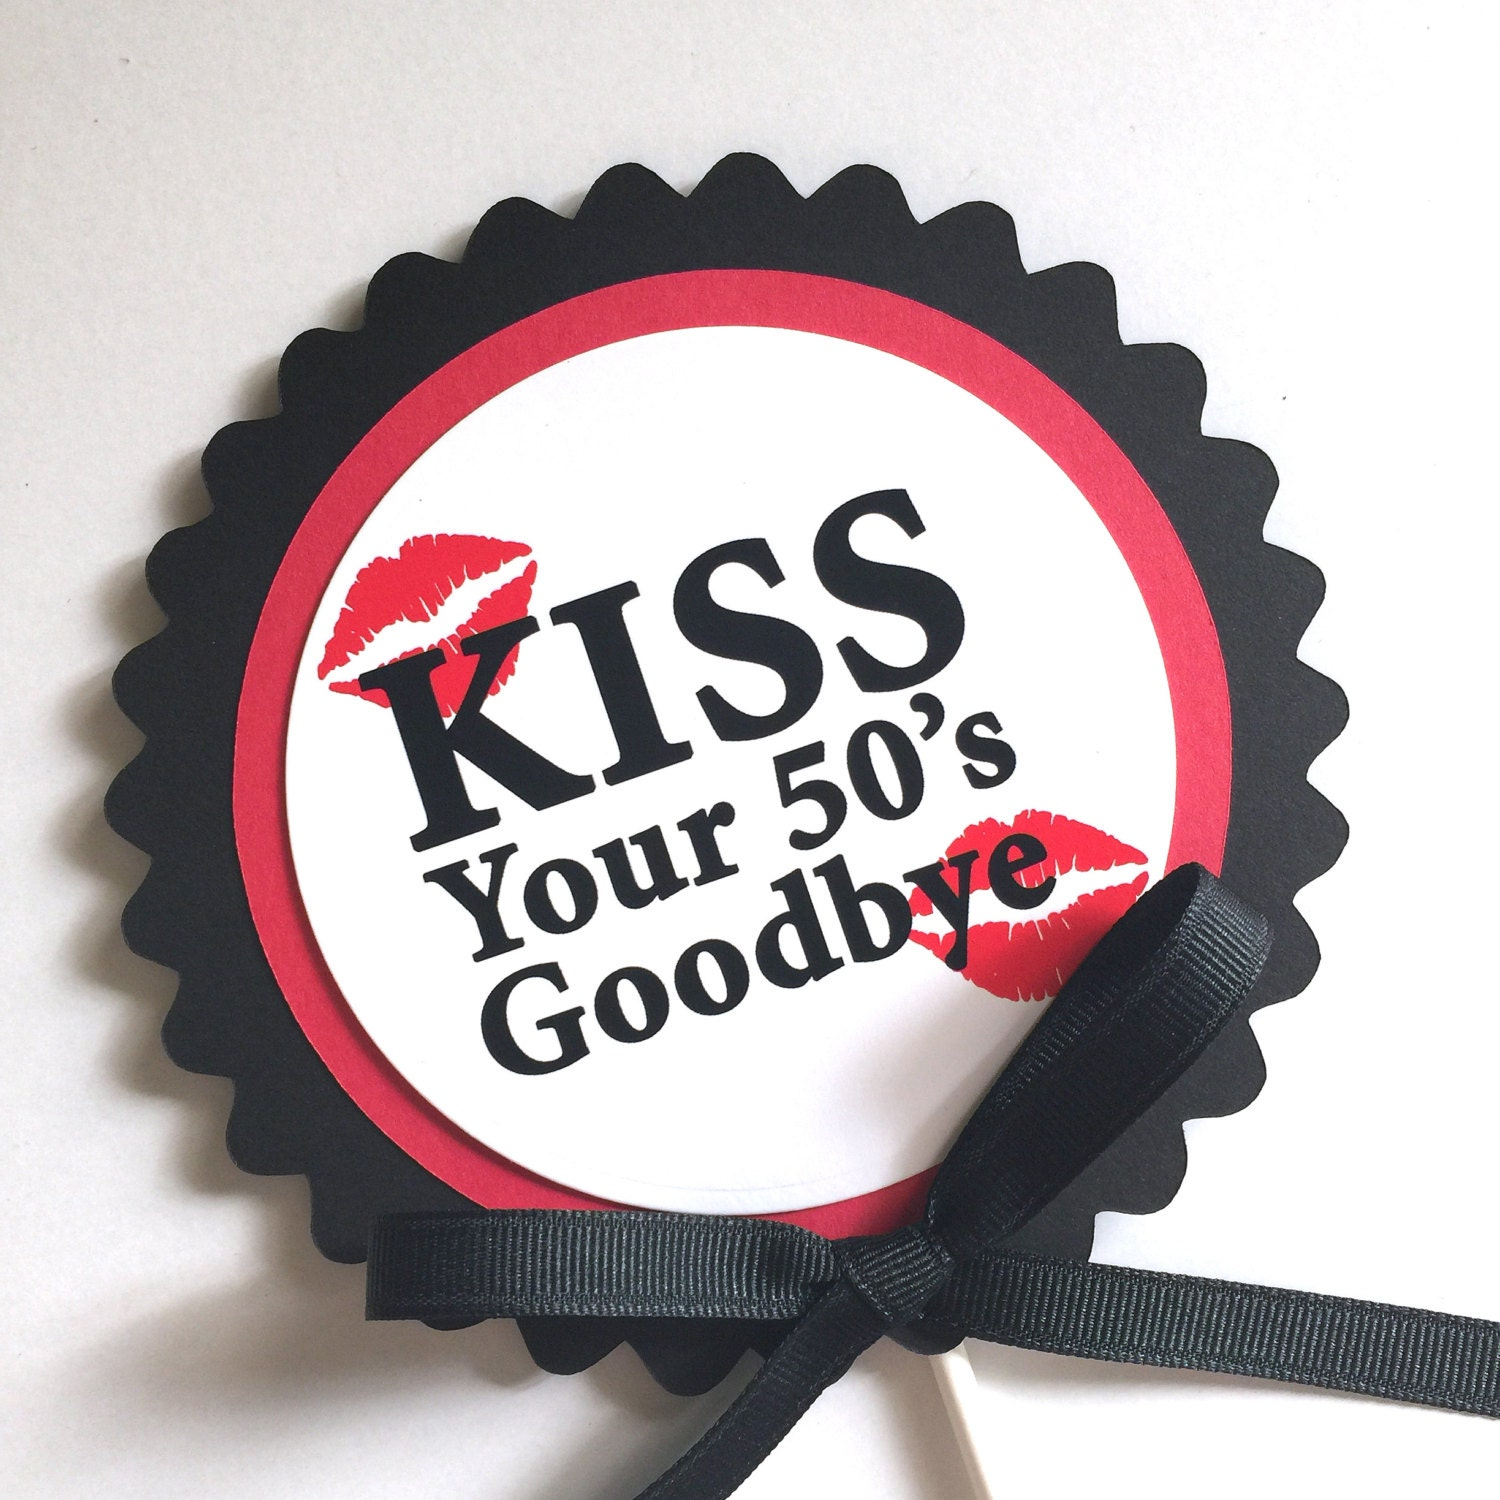 60th Birthday Kiss Your 50s Goodbye Cake Topper Decoration